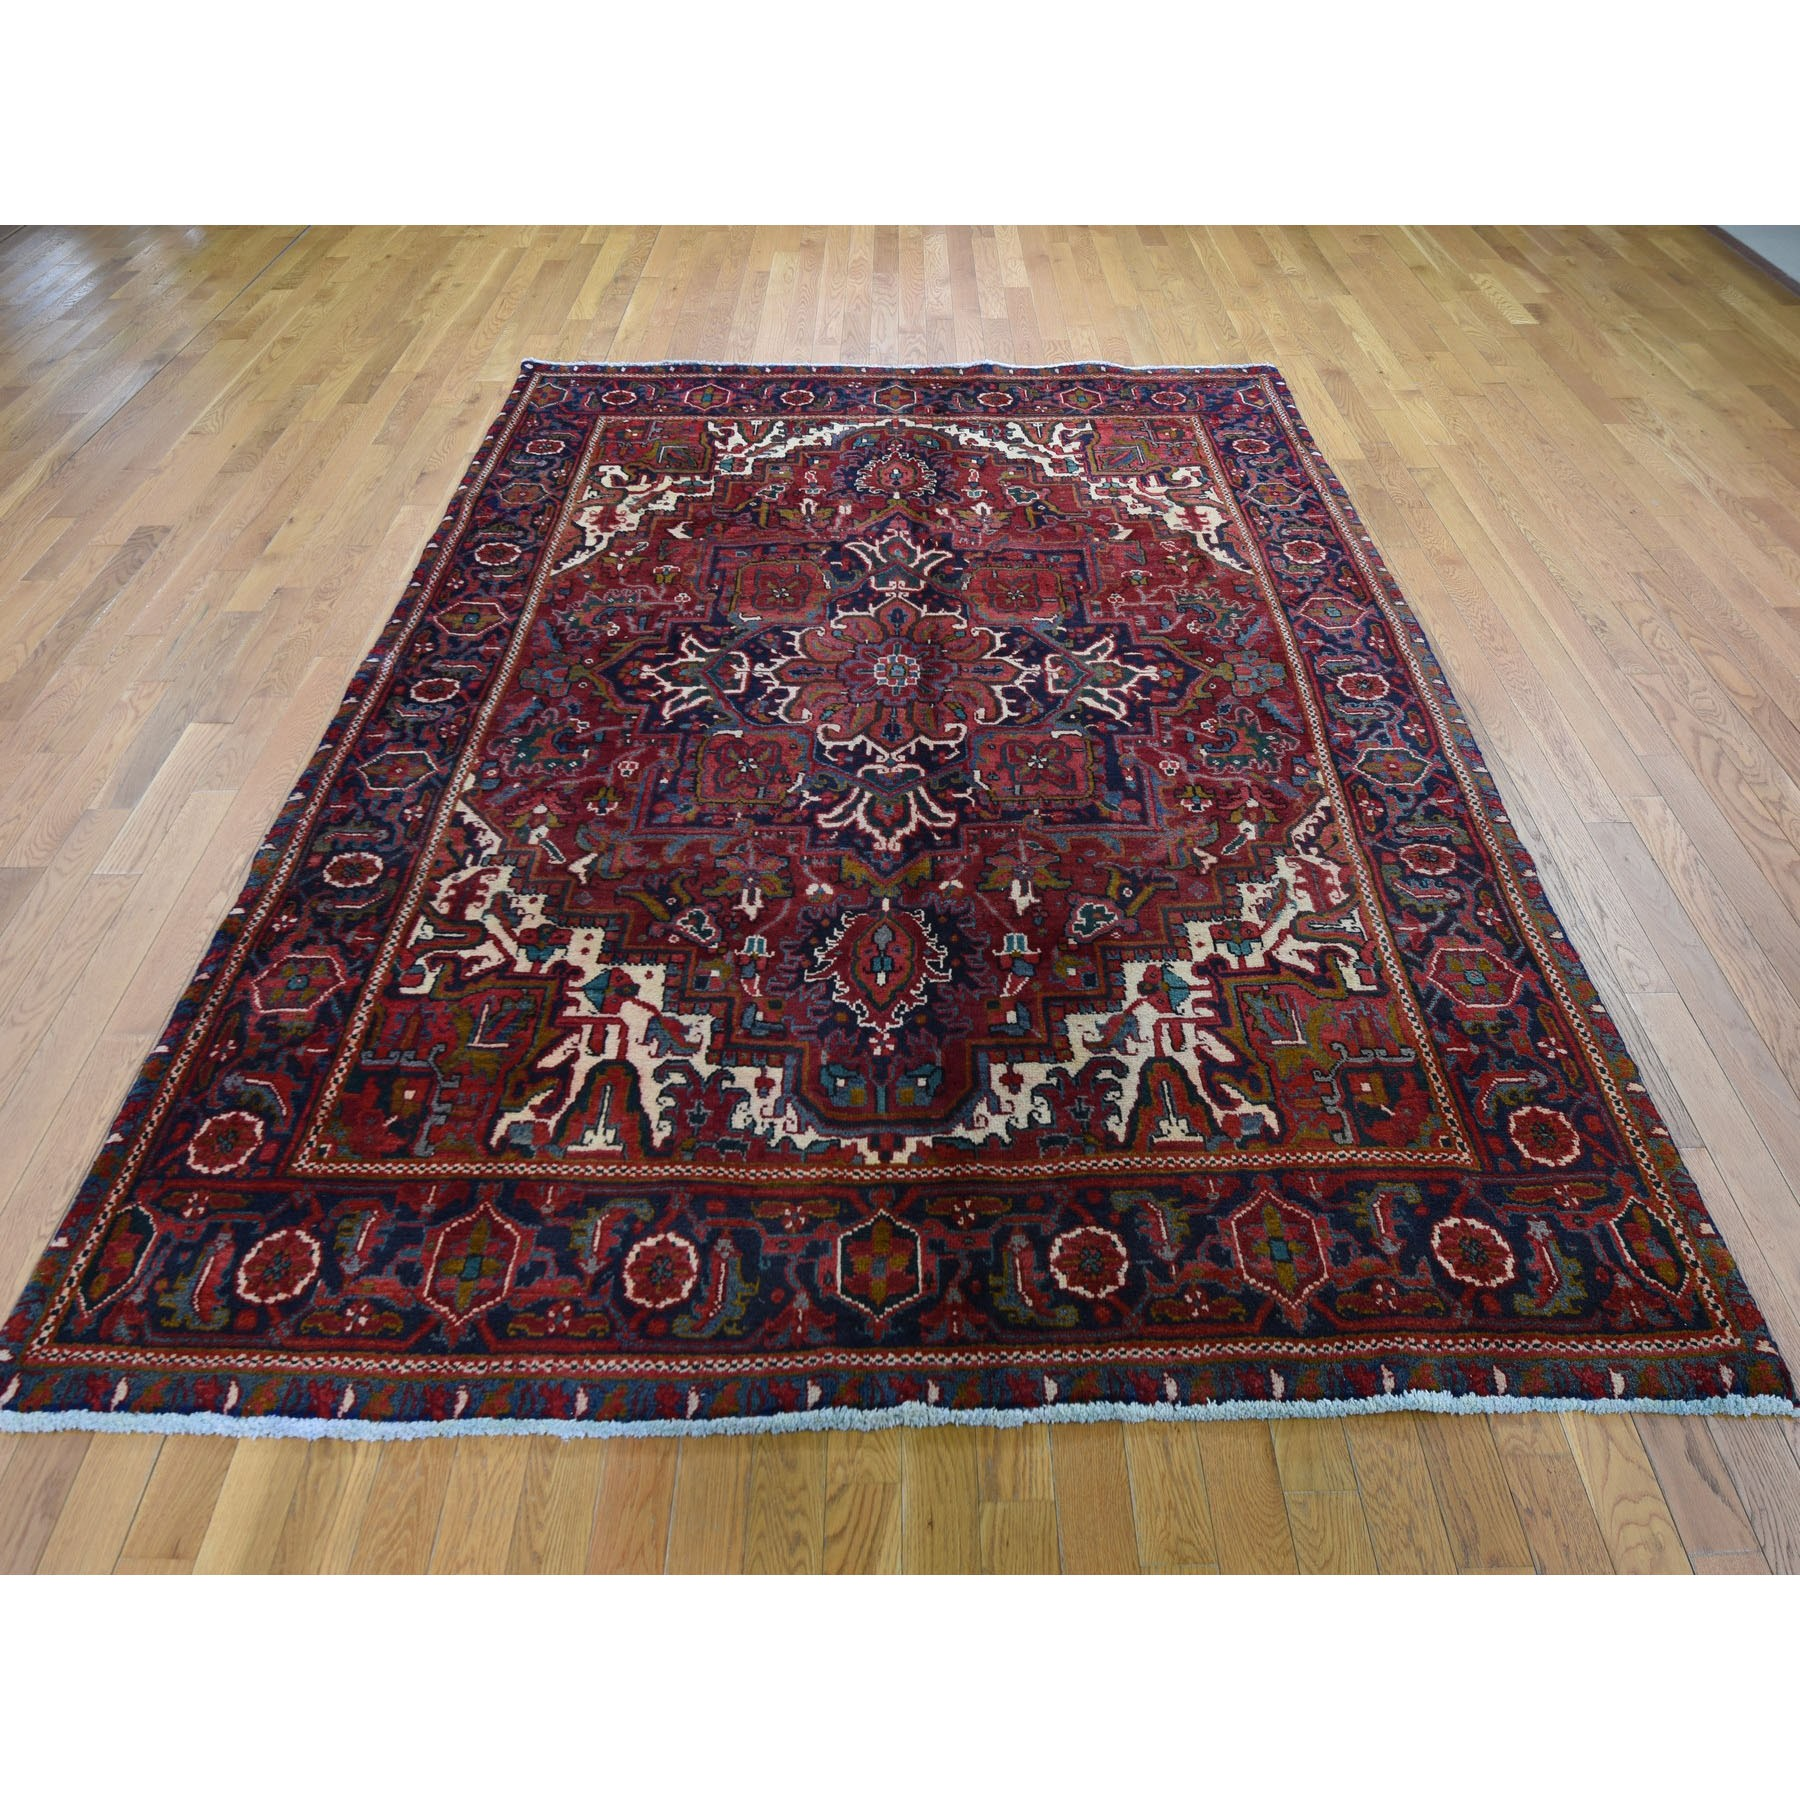 "6'10""x9'3"" Red Semi Antique Persian Heriz Geometric Design Thick and Plush Hand Woven Oriental Rug"